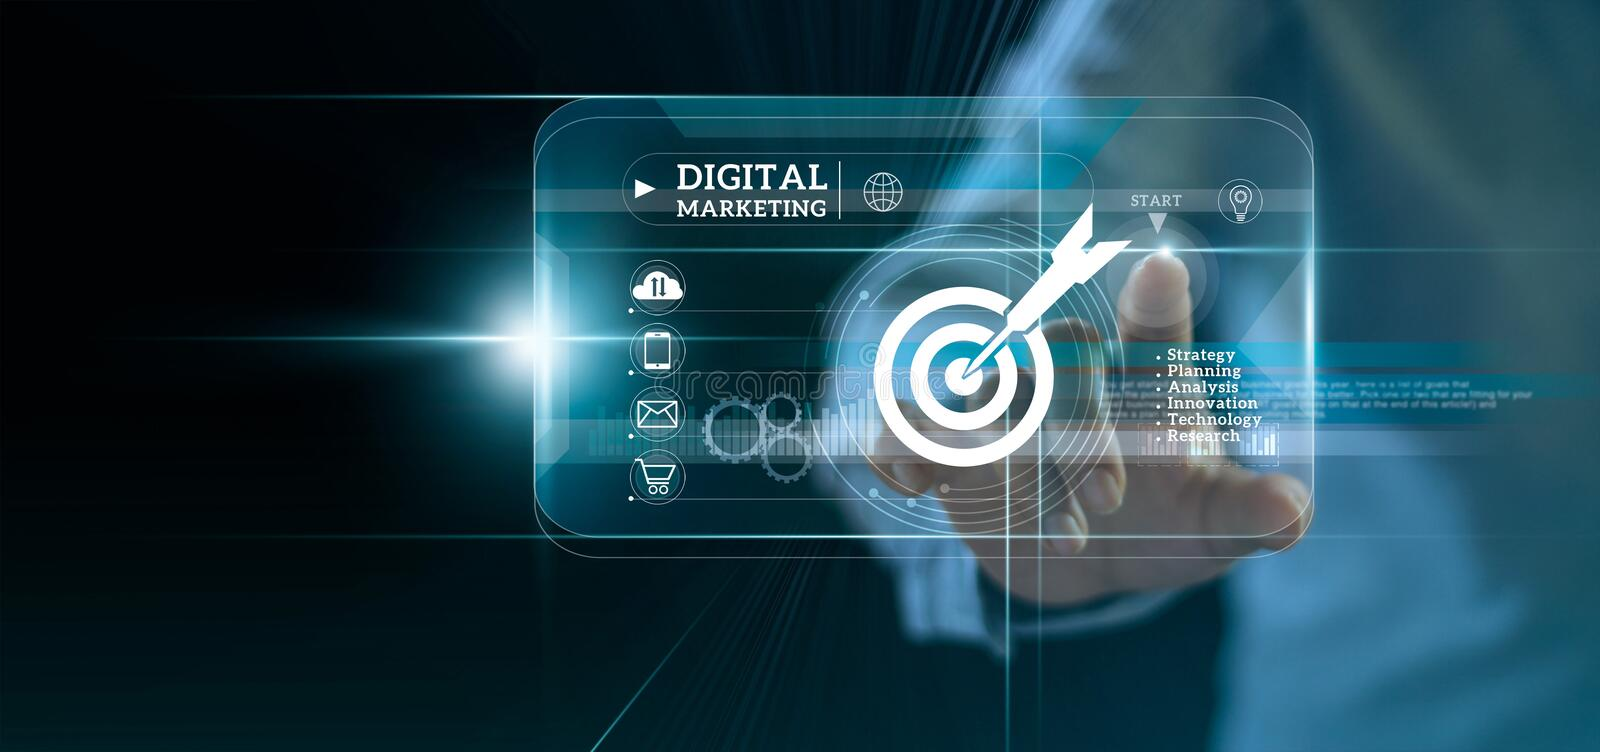 Digital marketing. Businessman touching start button on modern interface to business target and icon customer network connection royalty free stock photo